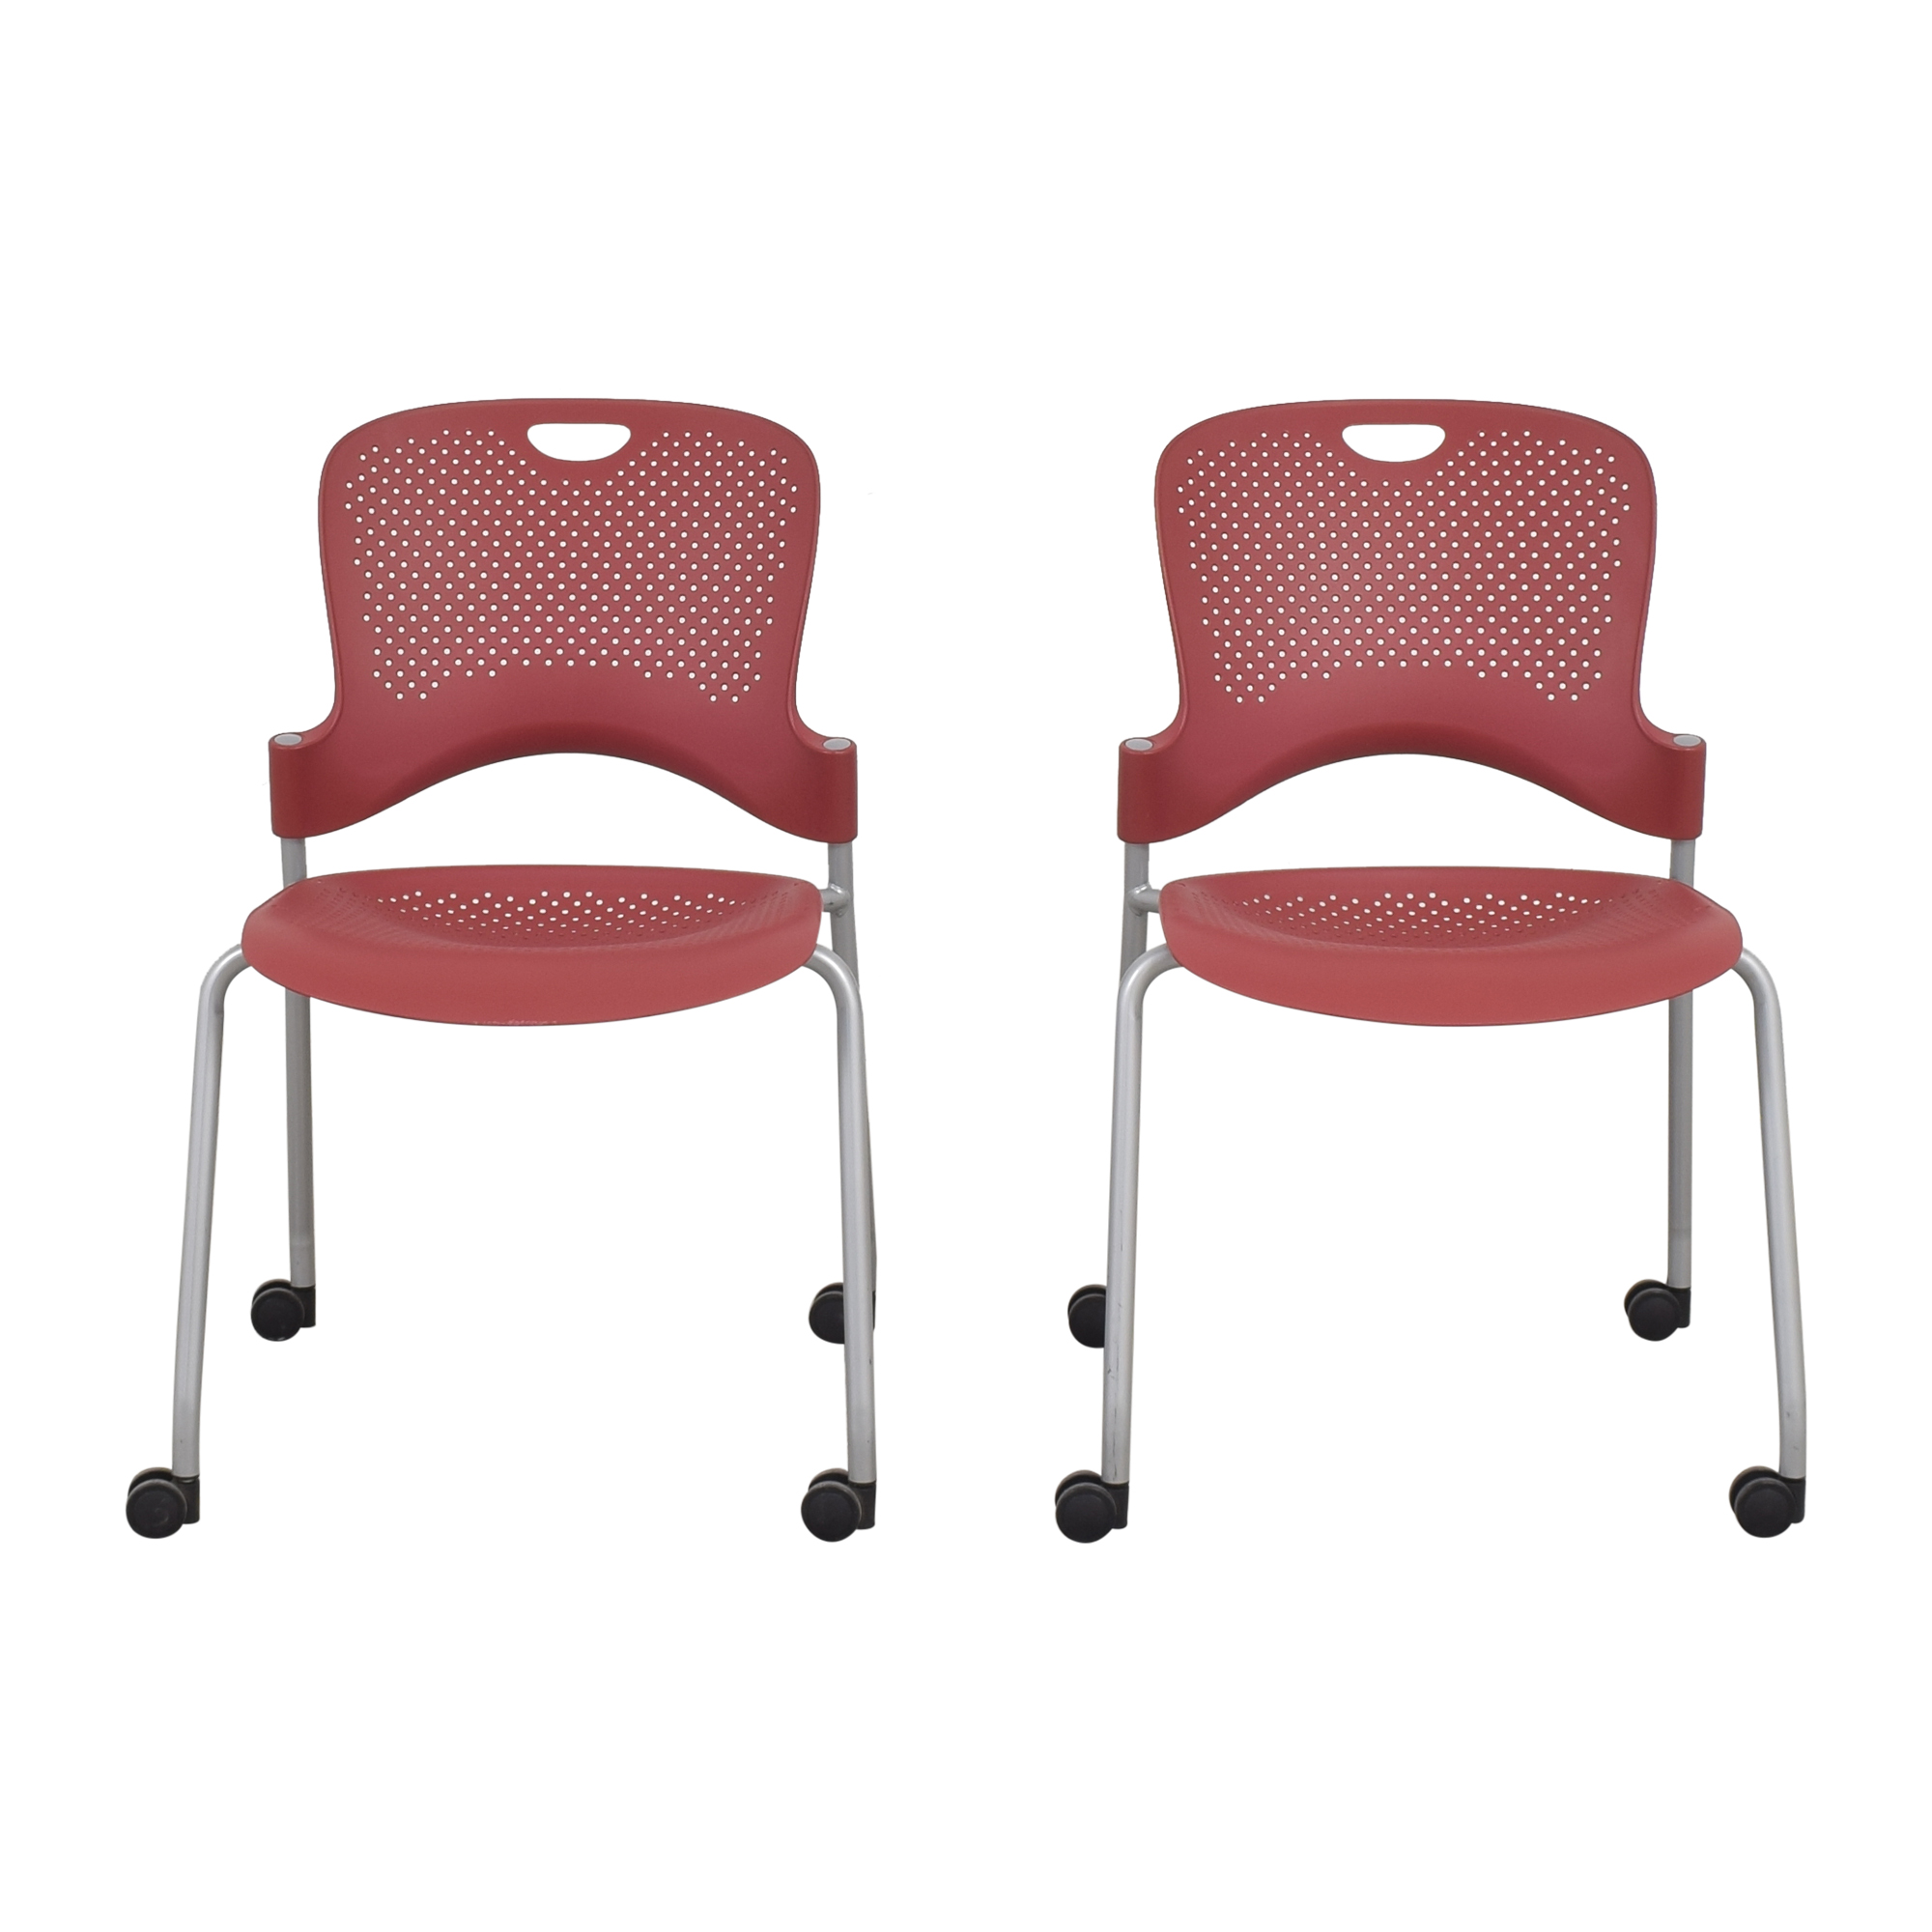 Herman Miller Herman Miller Caper Stacking Chairs dimensions